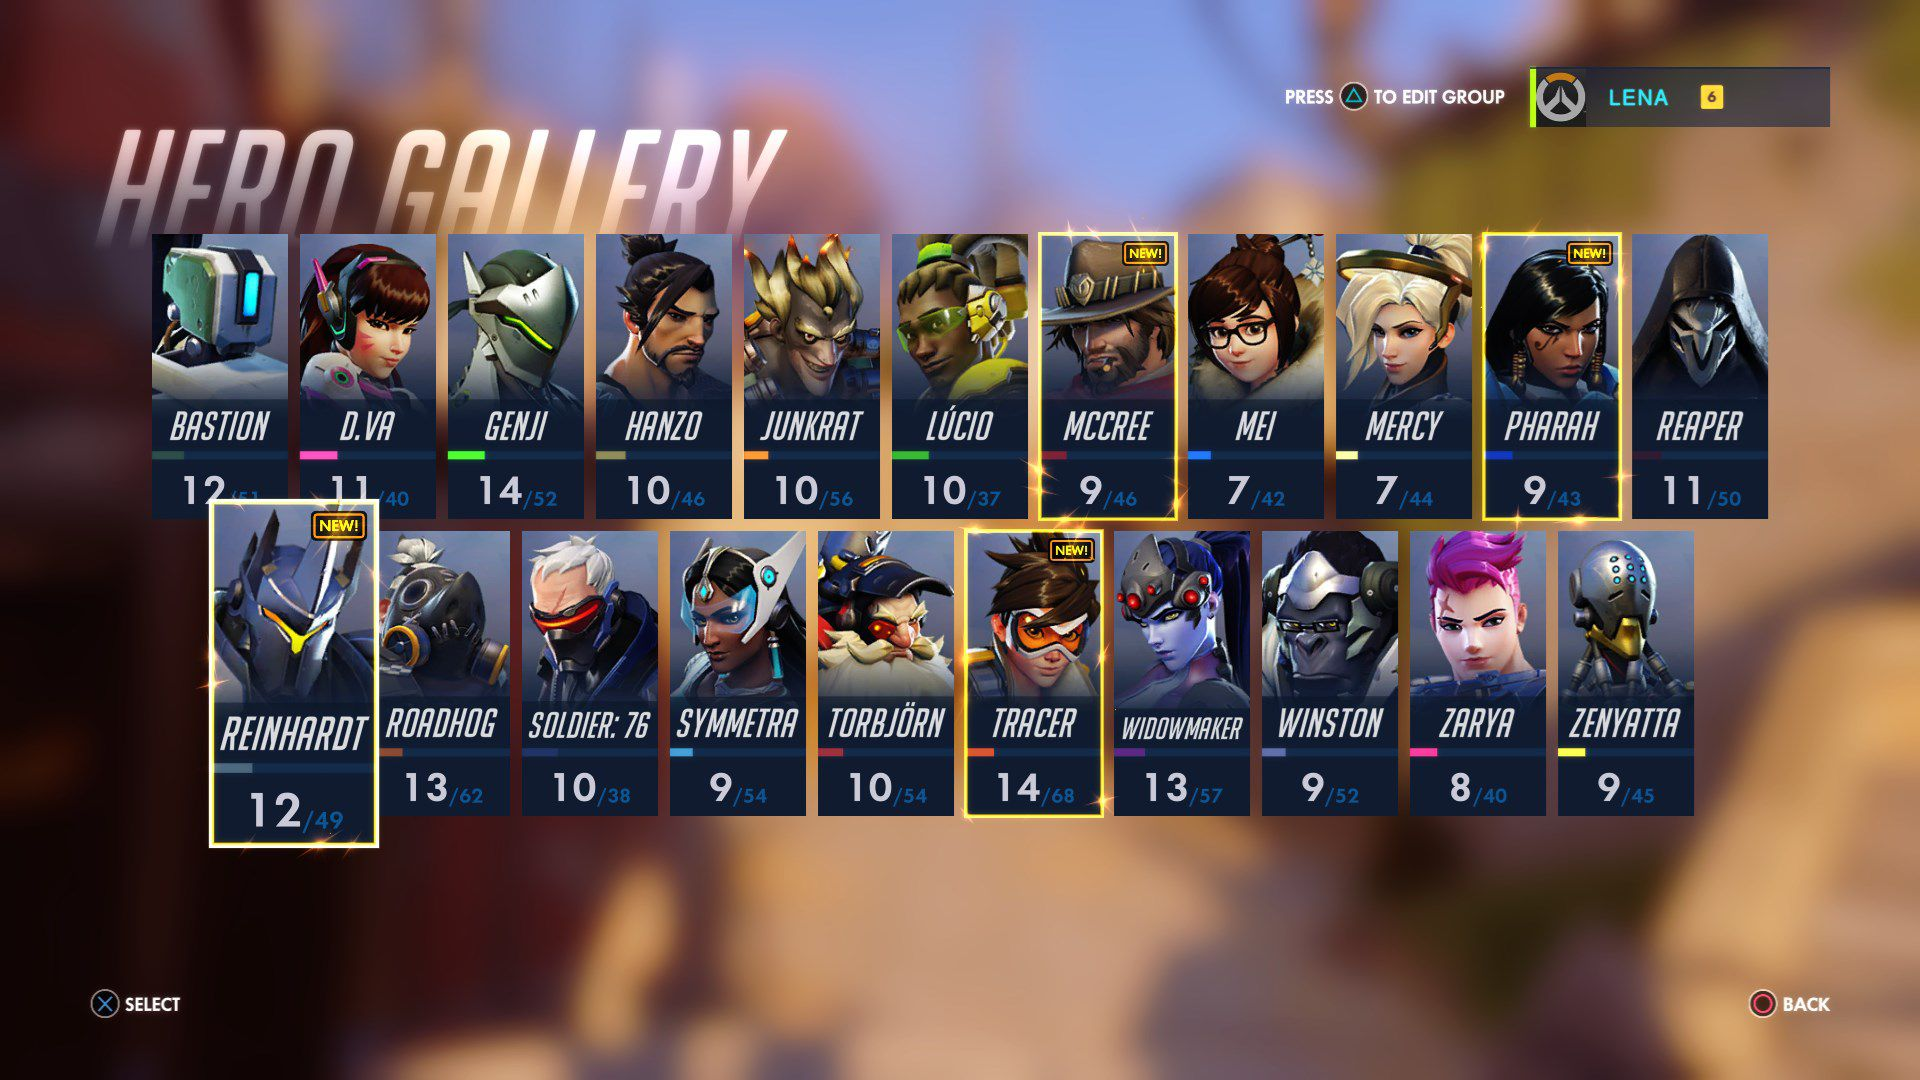 how to change your name on overwatch